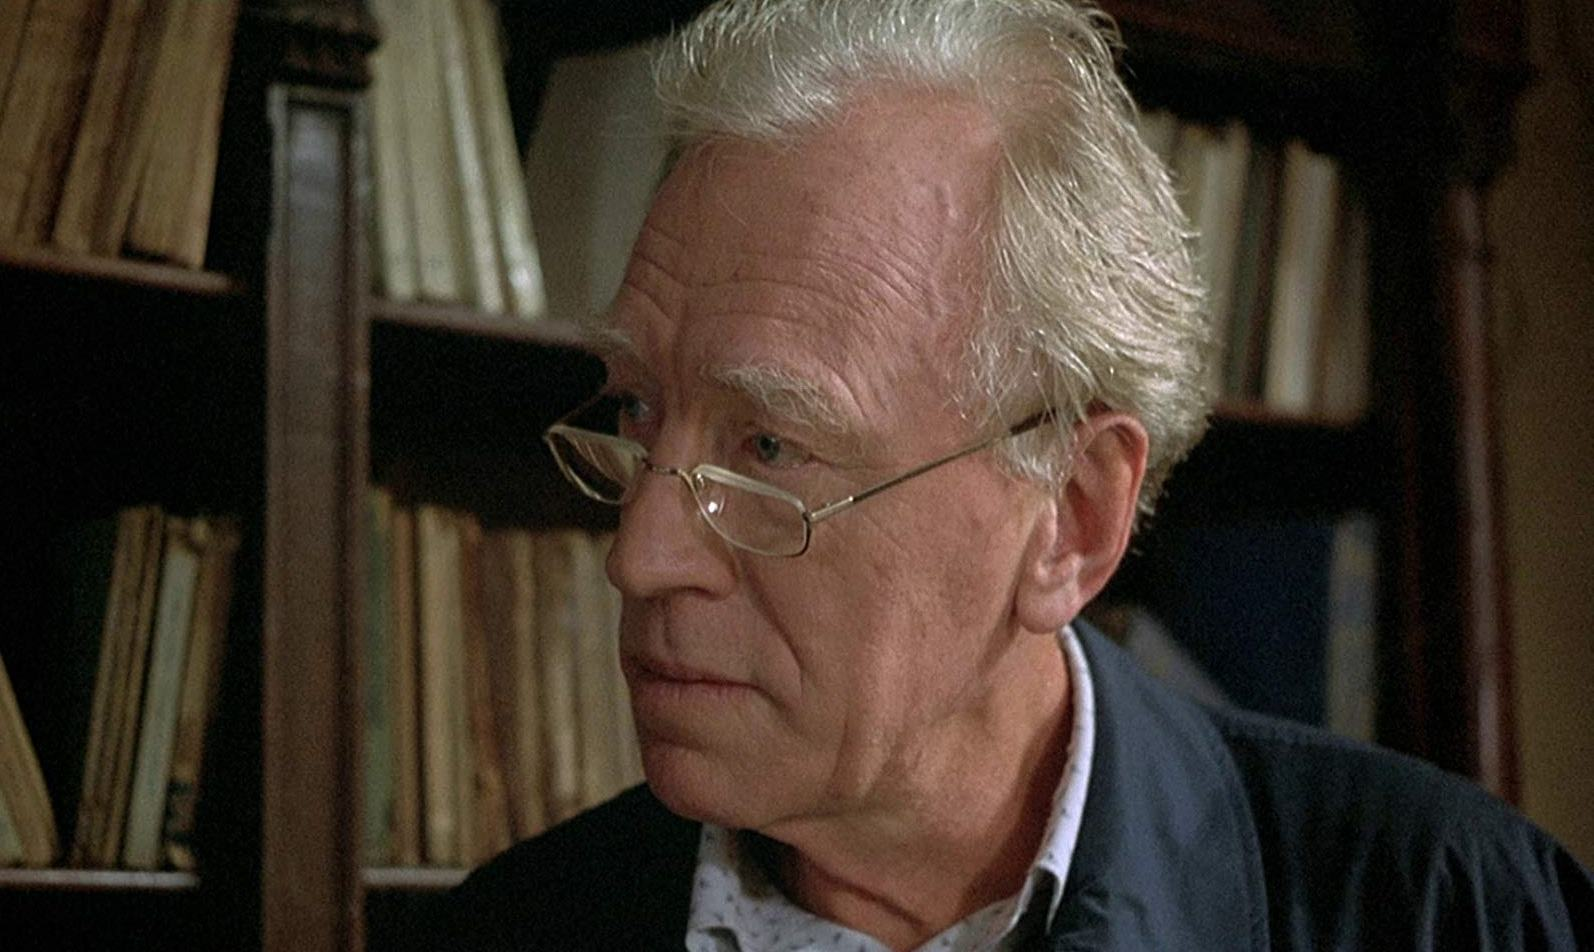 Max Von Sydow as retired police inspector Ulisse Moretti in Sleepless (2001)